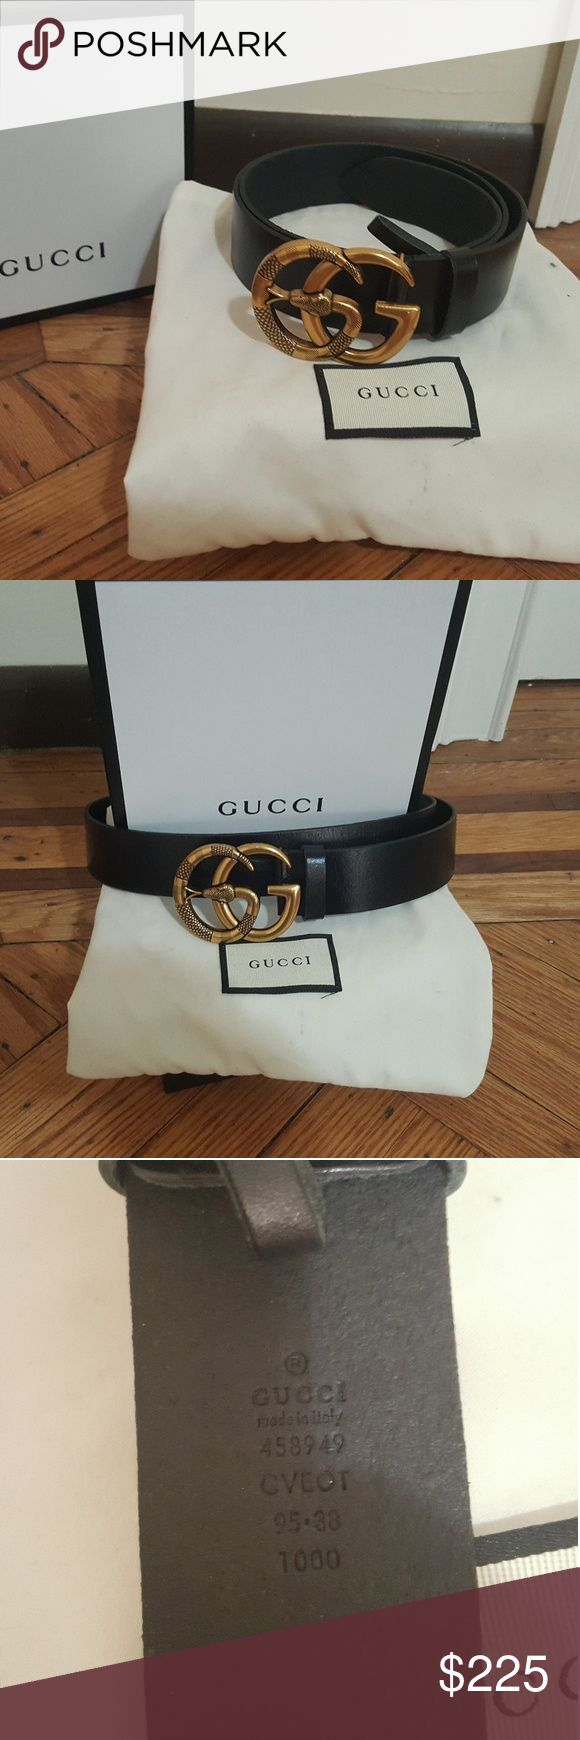 Brand new Gucci belt Brand new Gucci belt with a gold double G buckle with snake comes with box and dust bag...feel free to ask any questions Gucci Accessories Belts